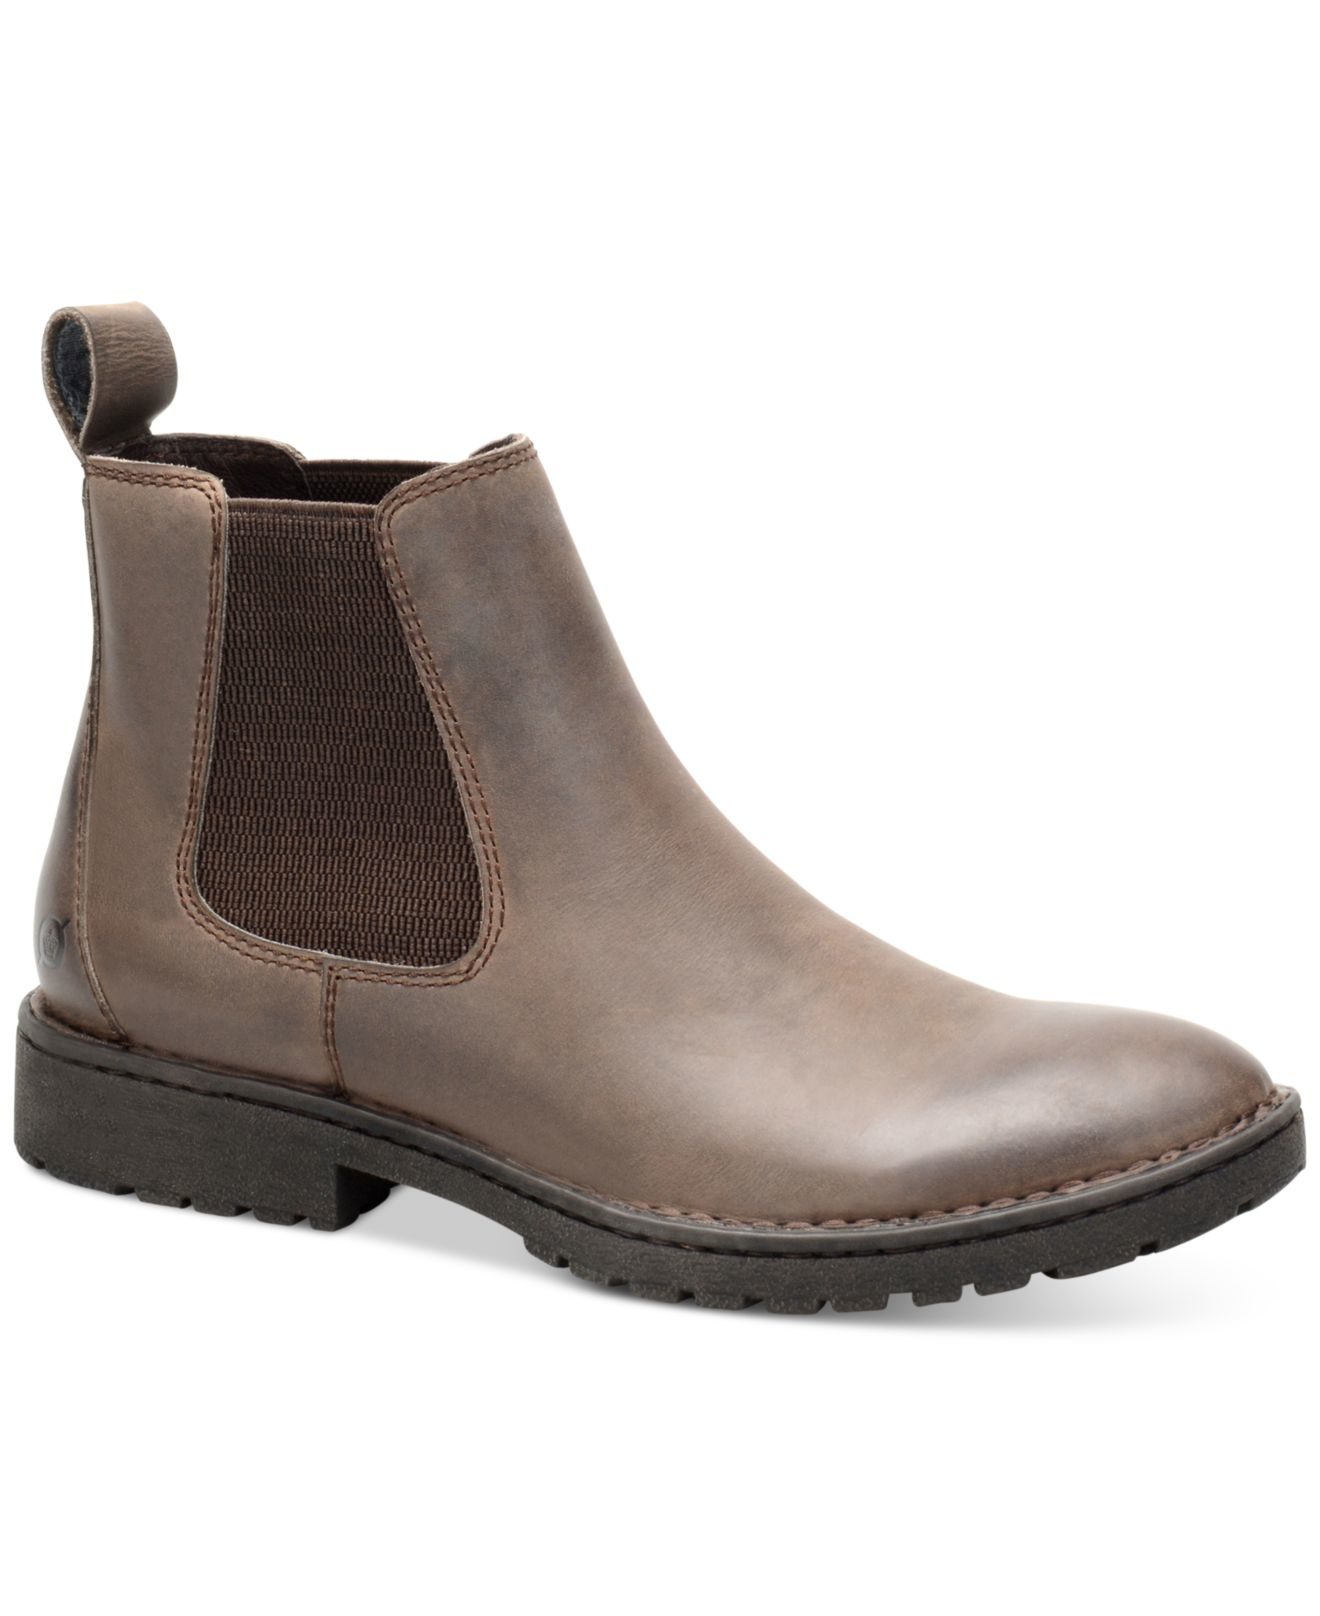 born julian chelsea boots in brown for lyst